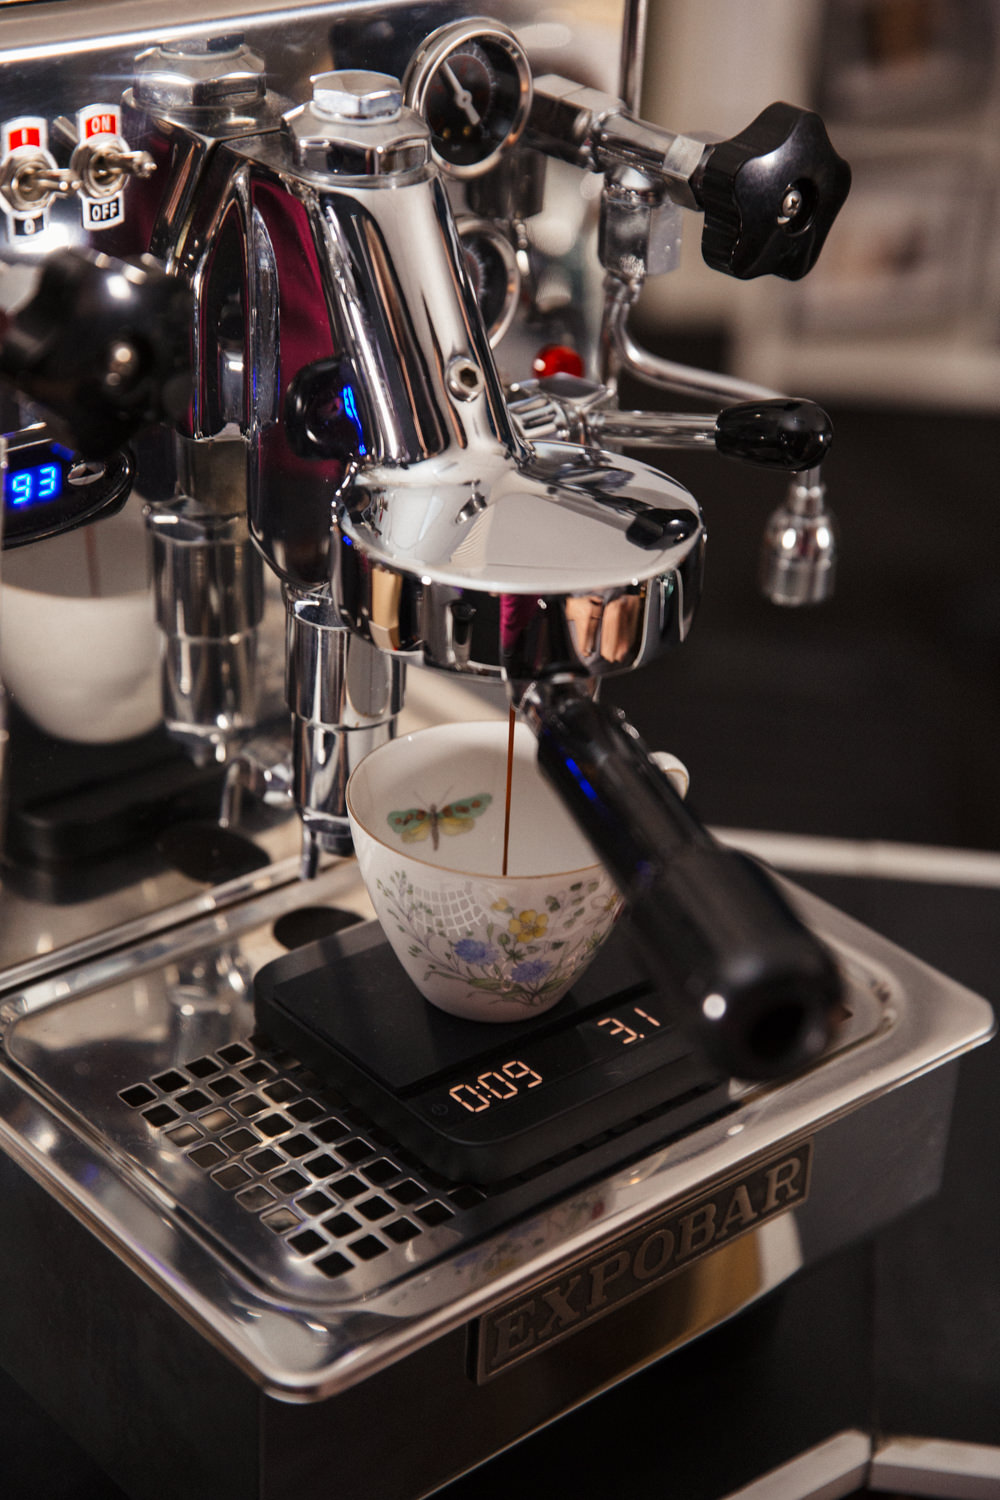 Our espresso machine is manually operated meaning we have absolute control over the espressos we brew.  We use scales & timers to weigh the coffee yield to ensure it's perfect, every single brew.